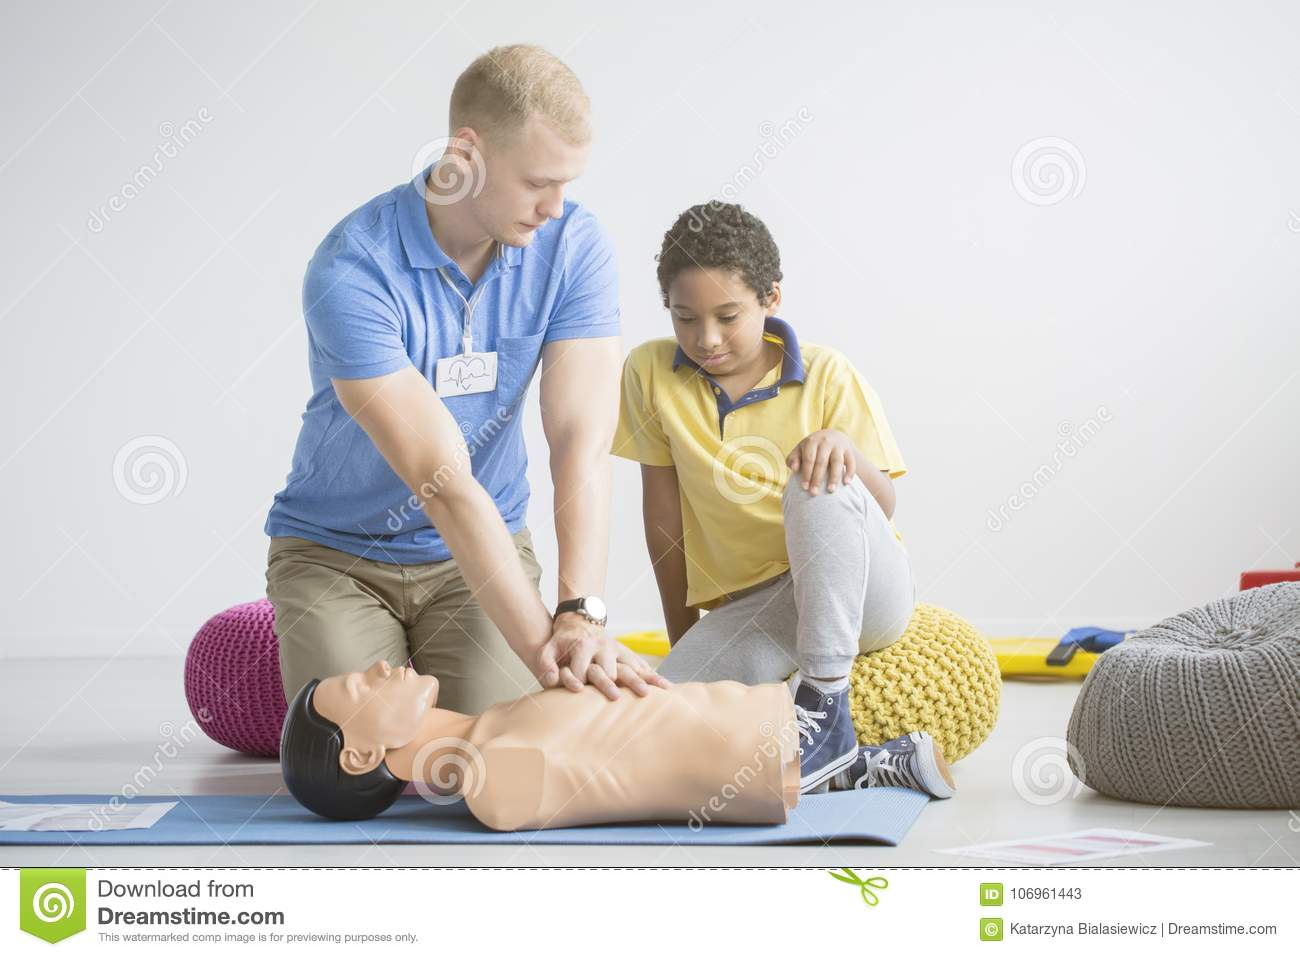 Paramedic showing first aid exercises